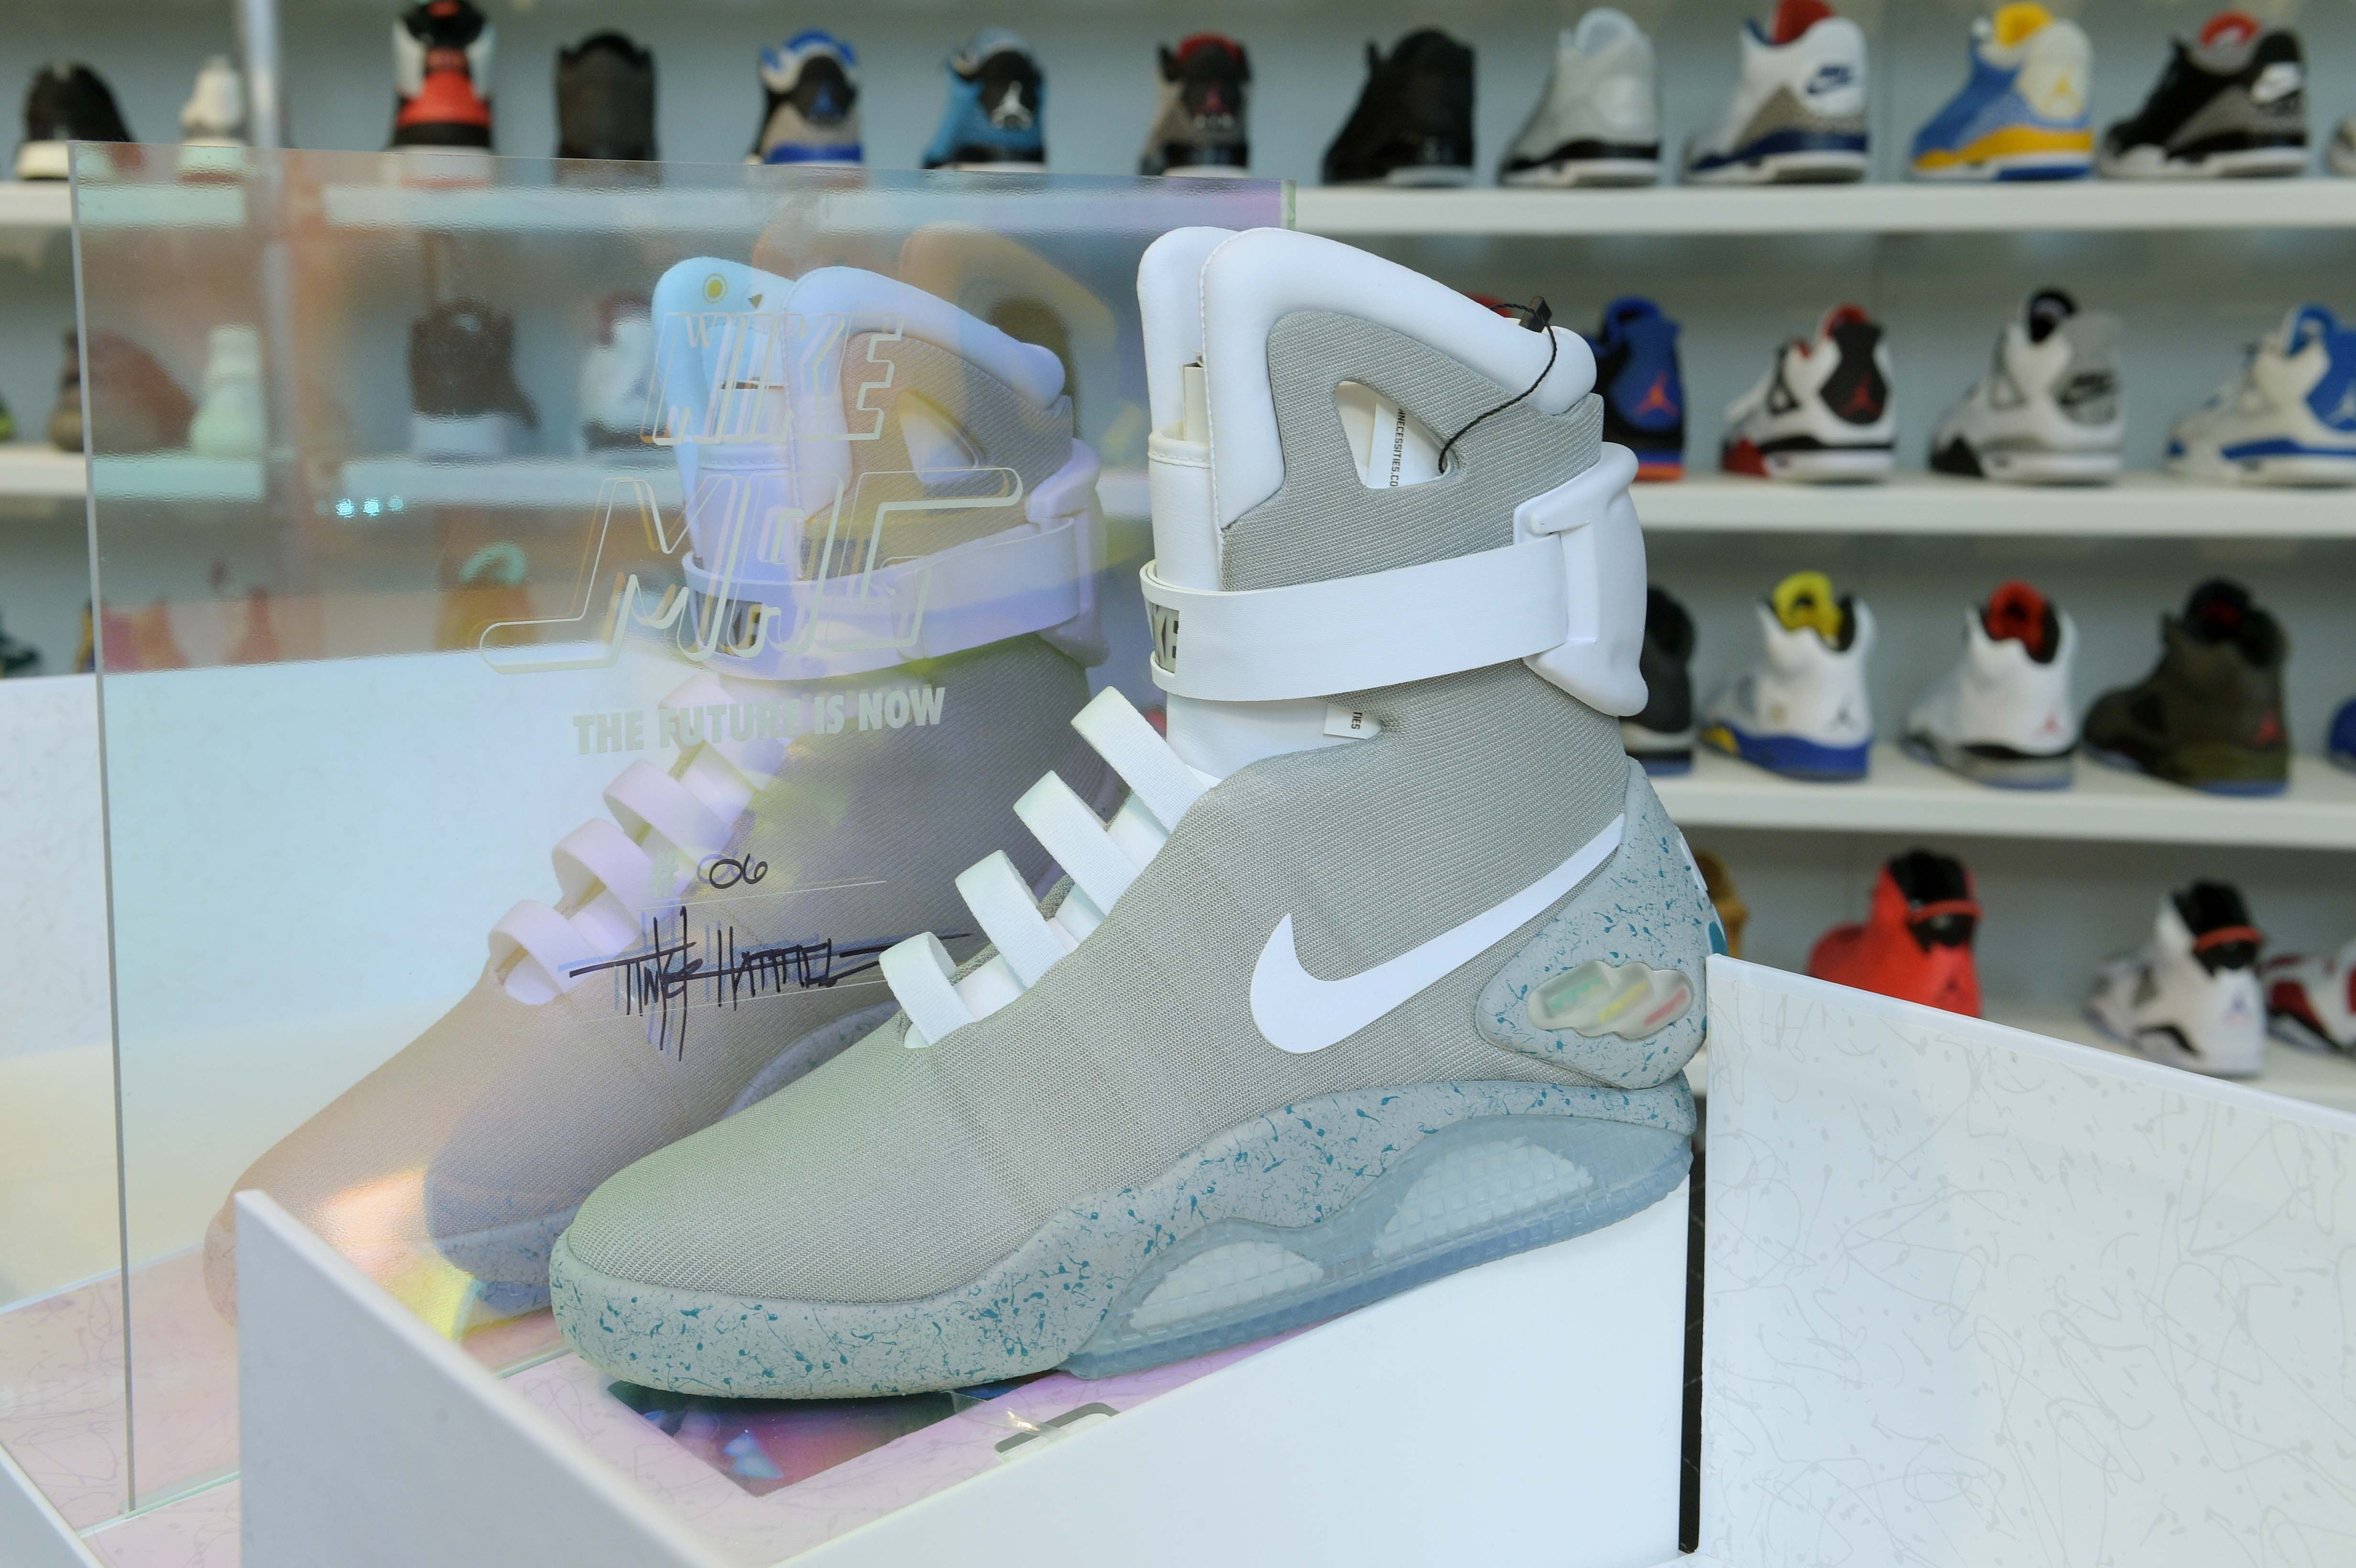 62215f955d85 American Eagle Opens Urban Necessities Pop-Up Shop Selling Nike MAG Sneakers